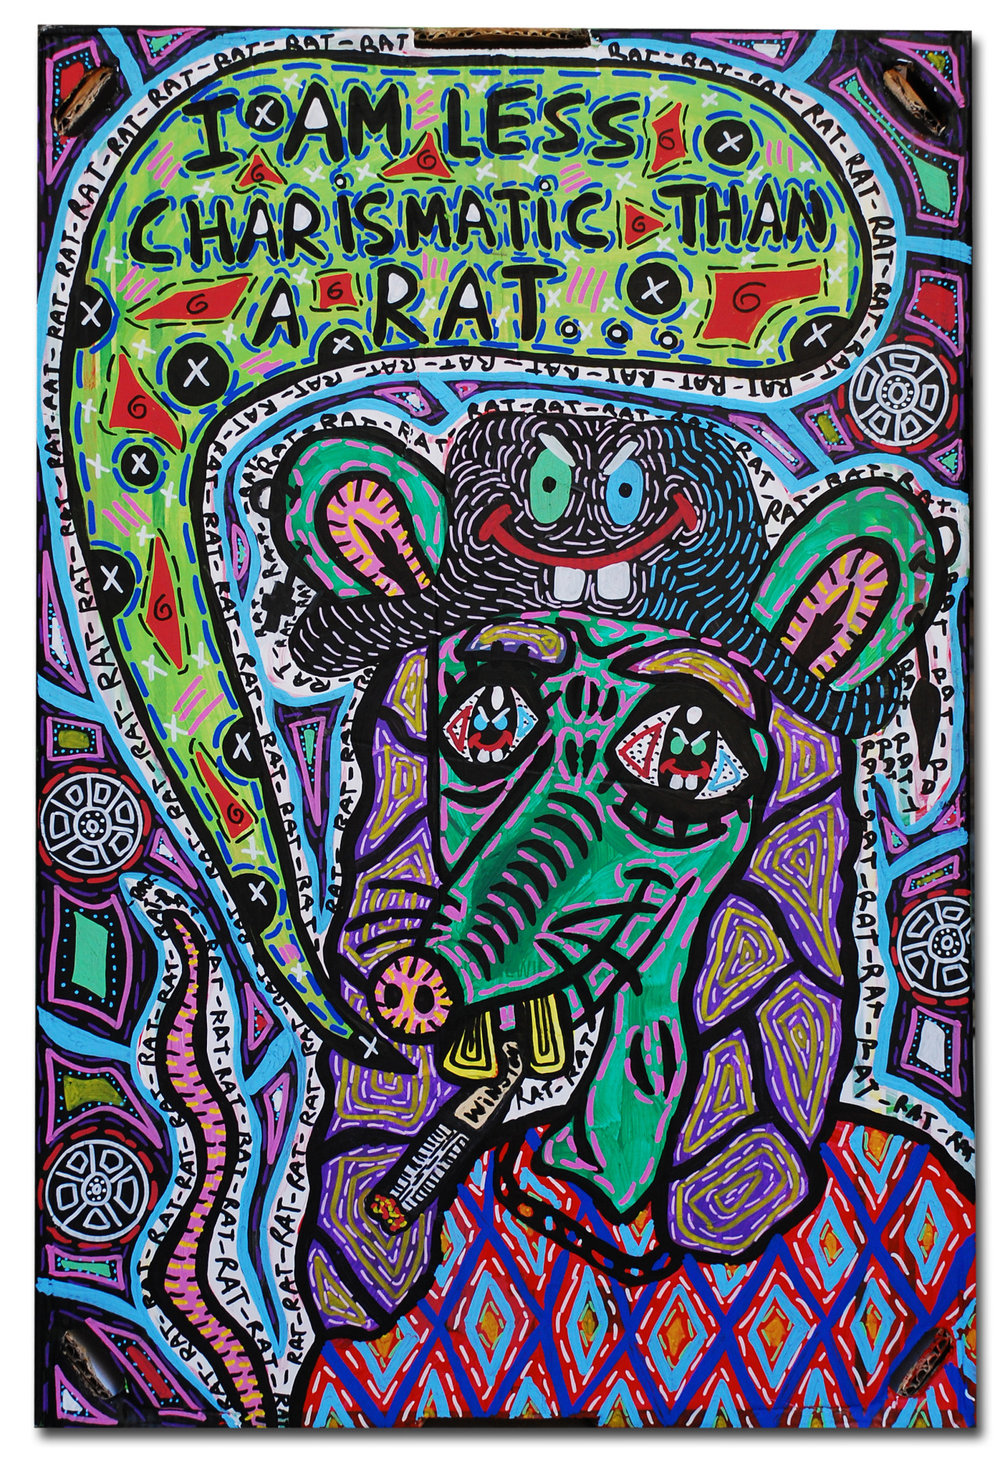 """I am less charismatic than a rat..."" , 2014   Acrylic paint and Posca marker on cardboard, 50 x 60 cm"